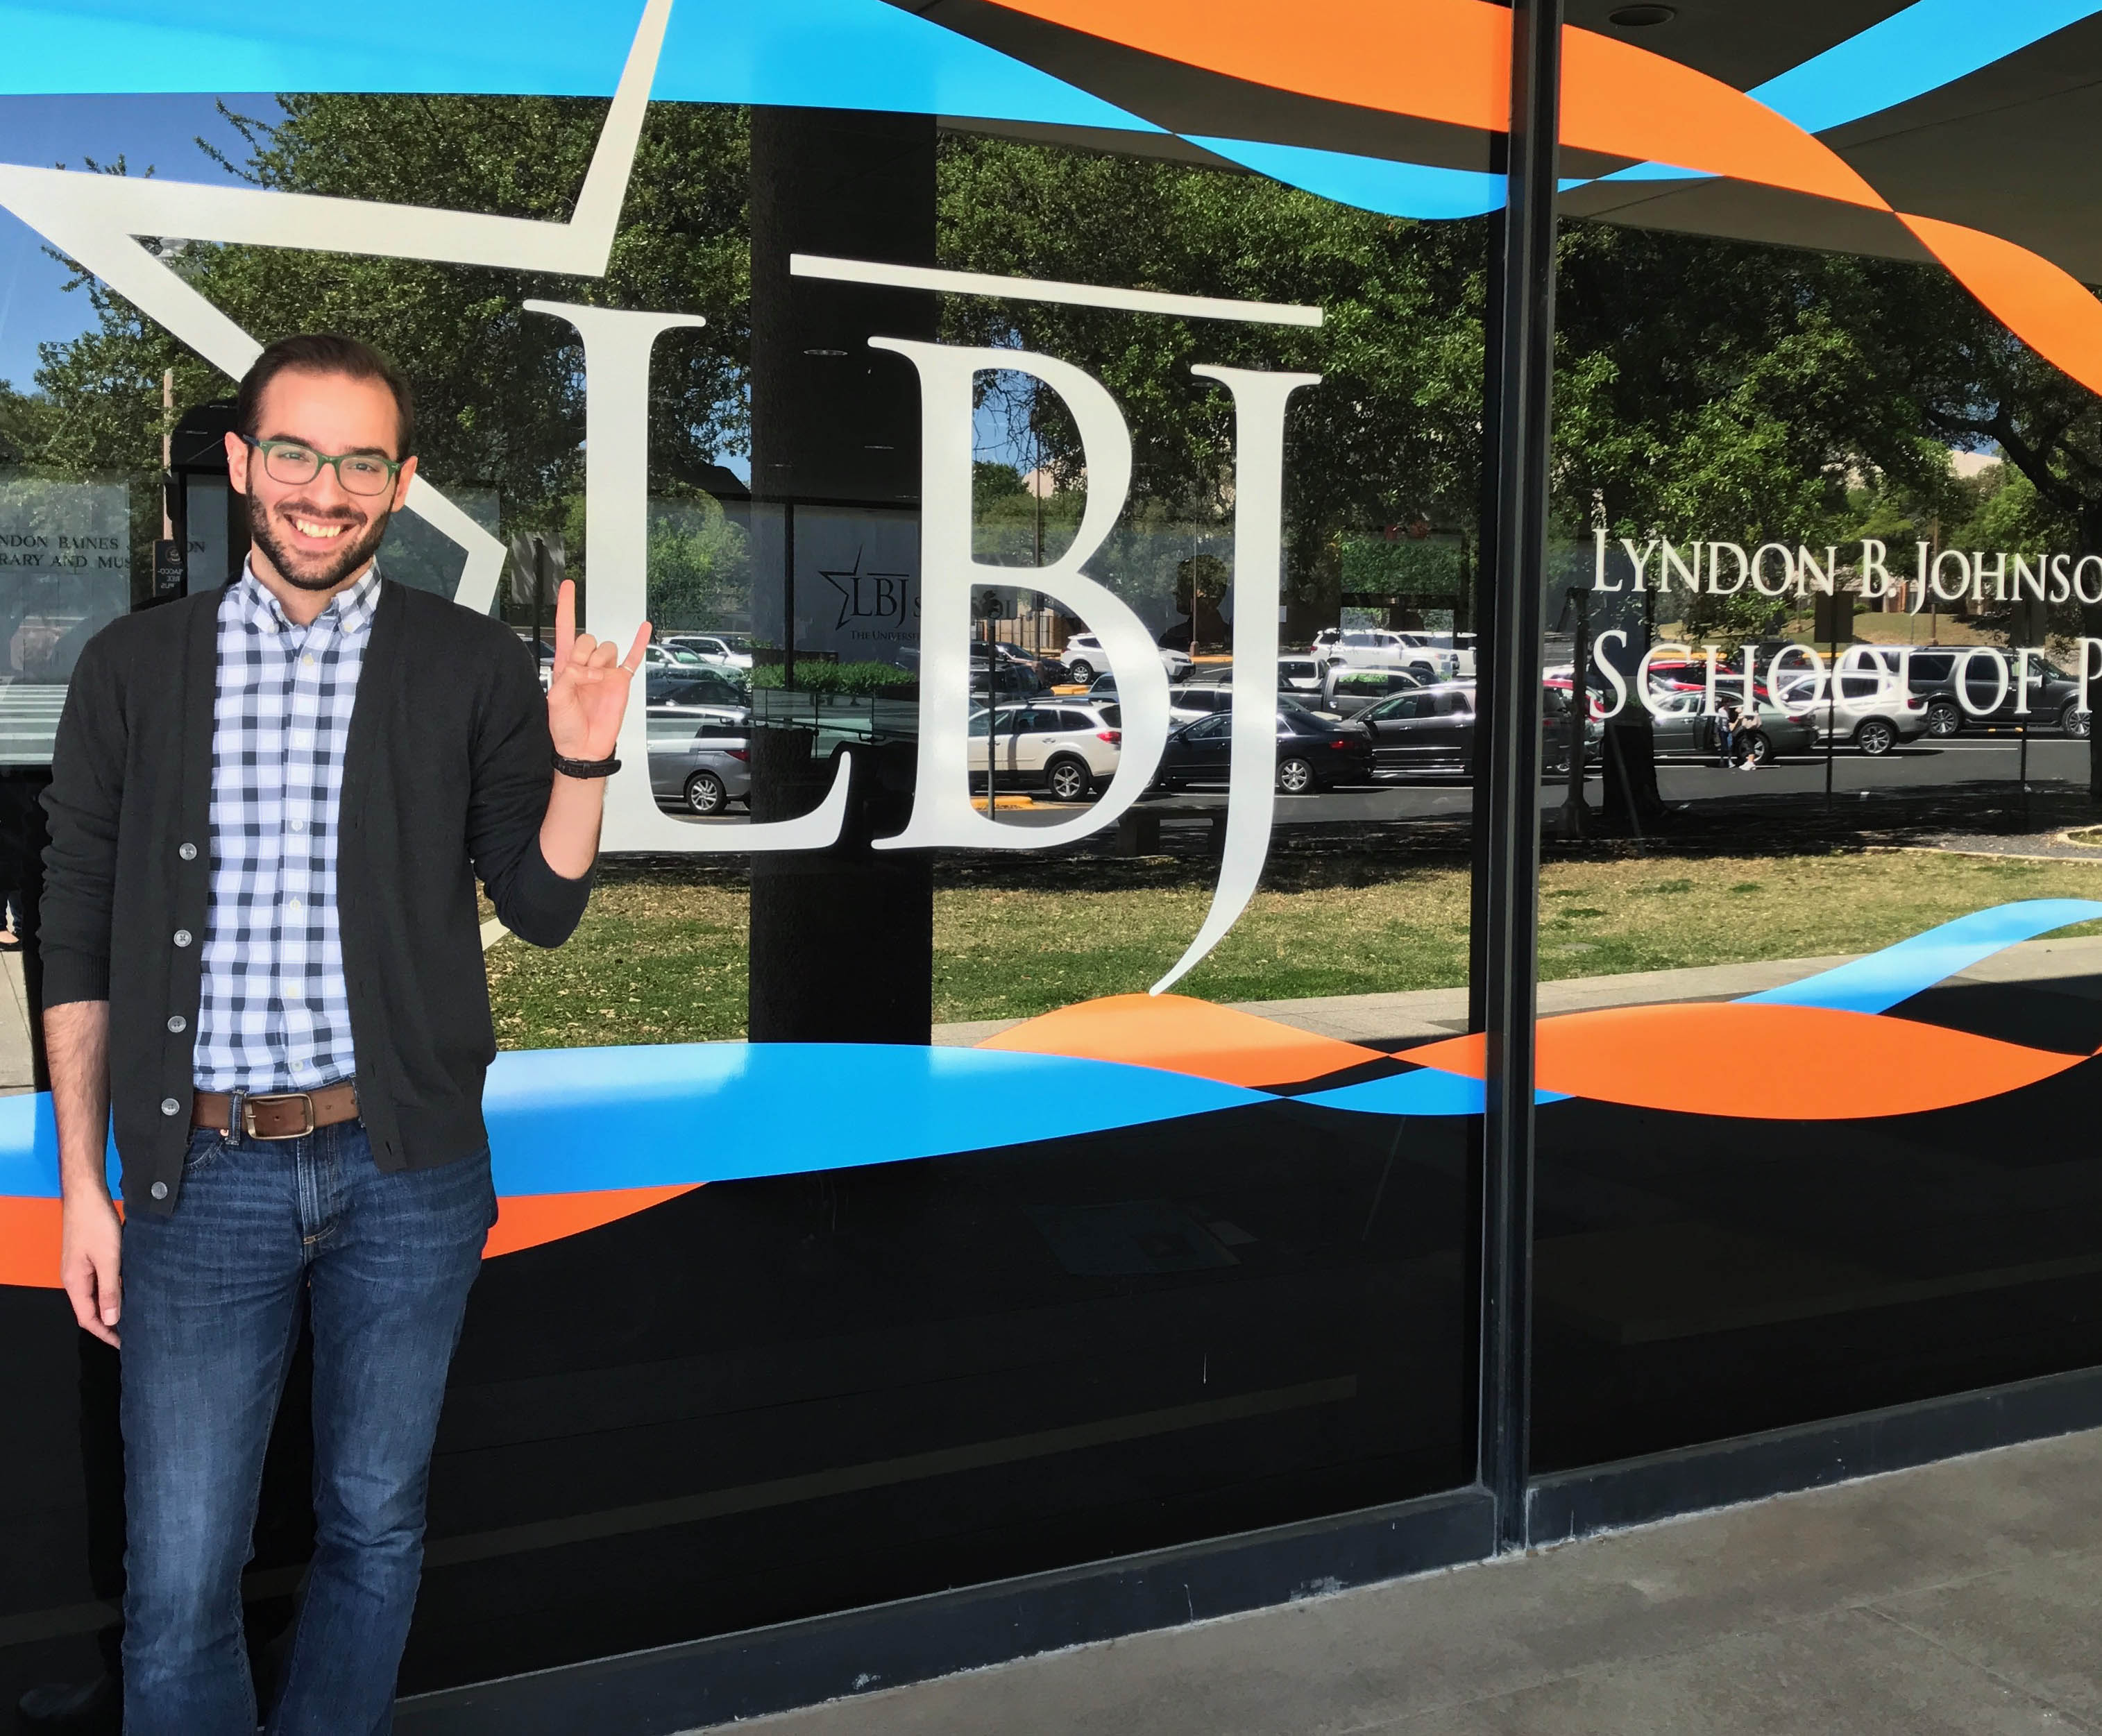 LBJ student Wayne Holstine (MPAff '19) on his first day of grad school